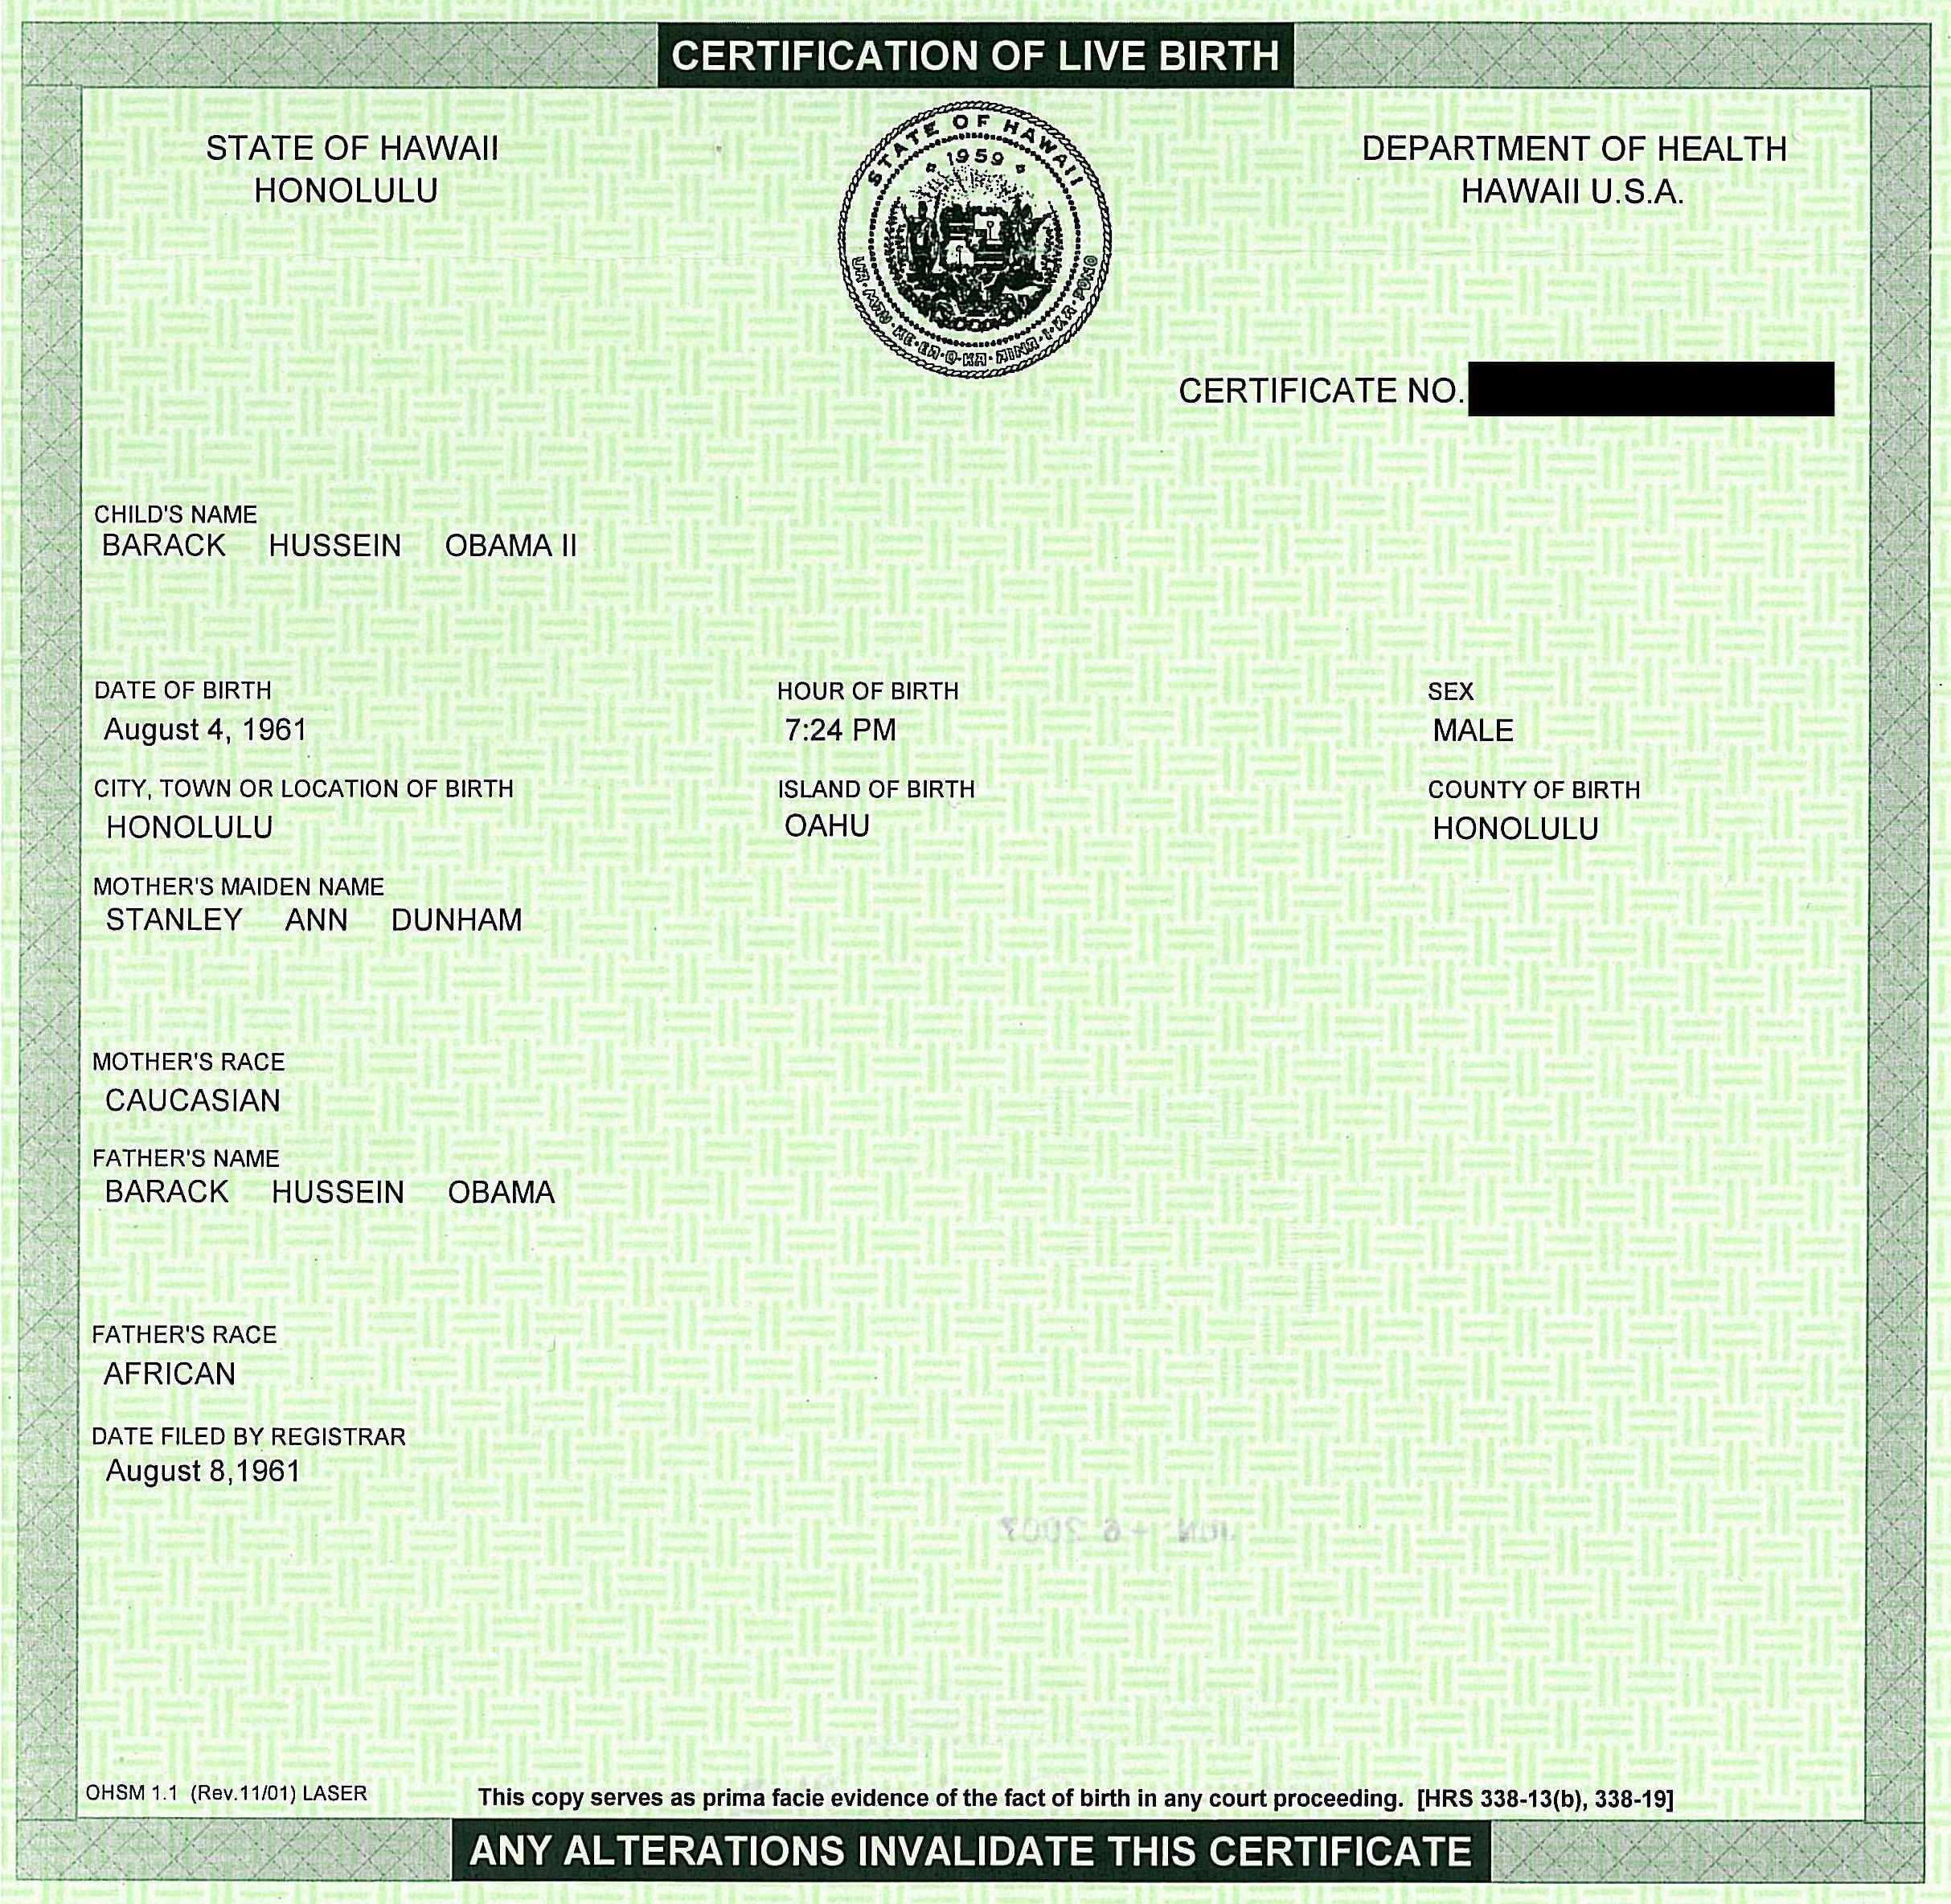 White House releases Obama's birth certificate – CNN Political ...